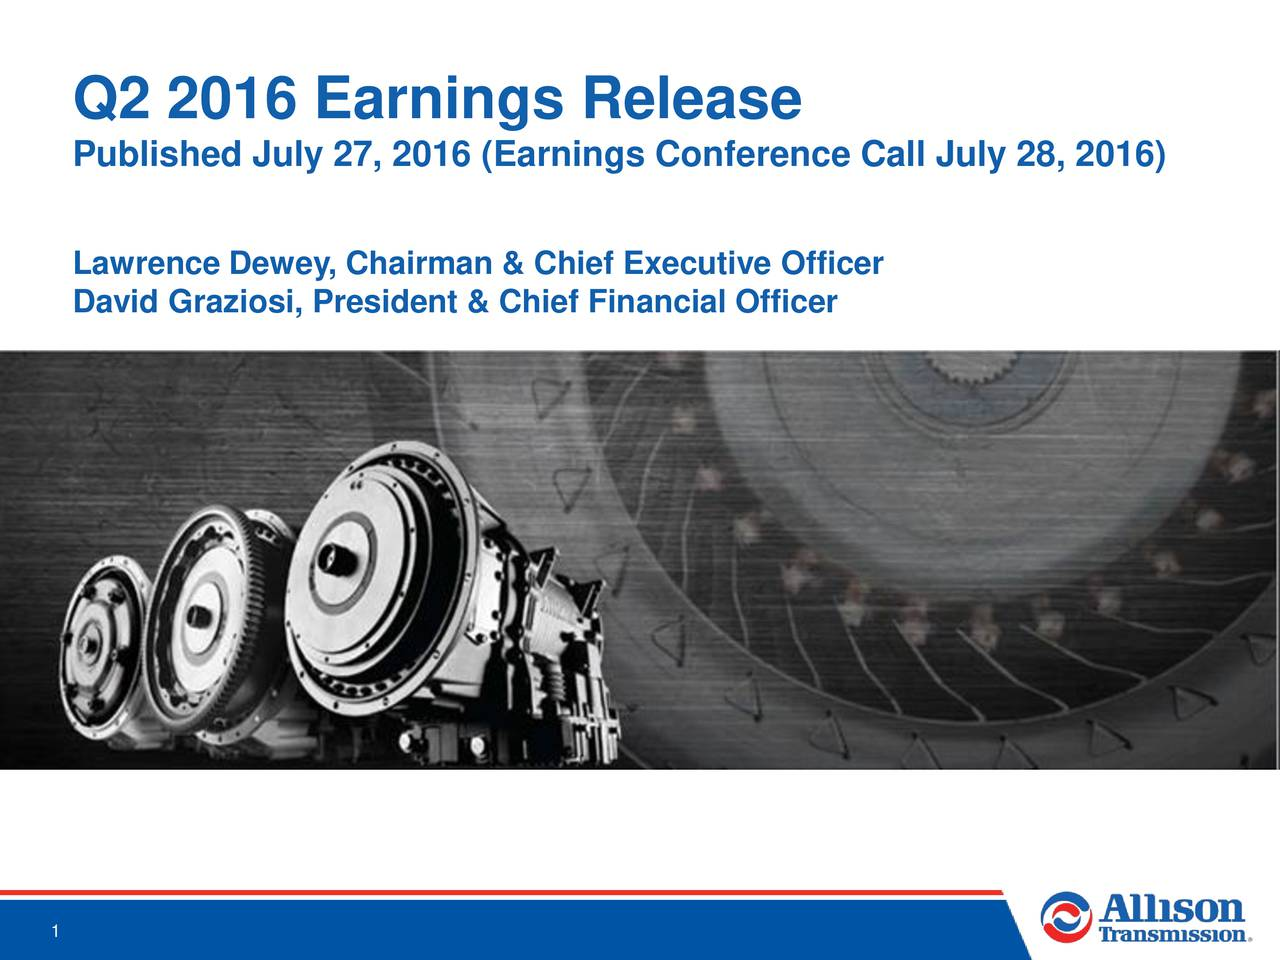 Published July 27, 2016 (Earnings Conference Call July 28, 2016) Lawrence Dewey, Chairman & Chief Executive Officer David Graziosi, President & Chief Financial Officer 1